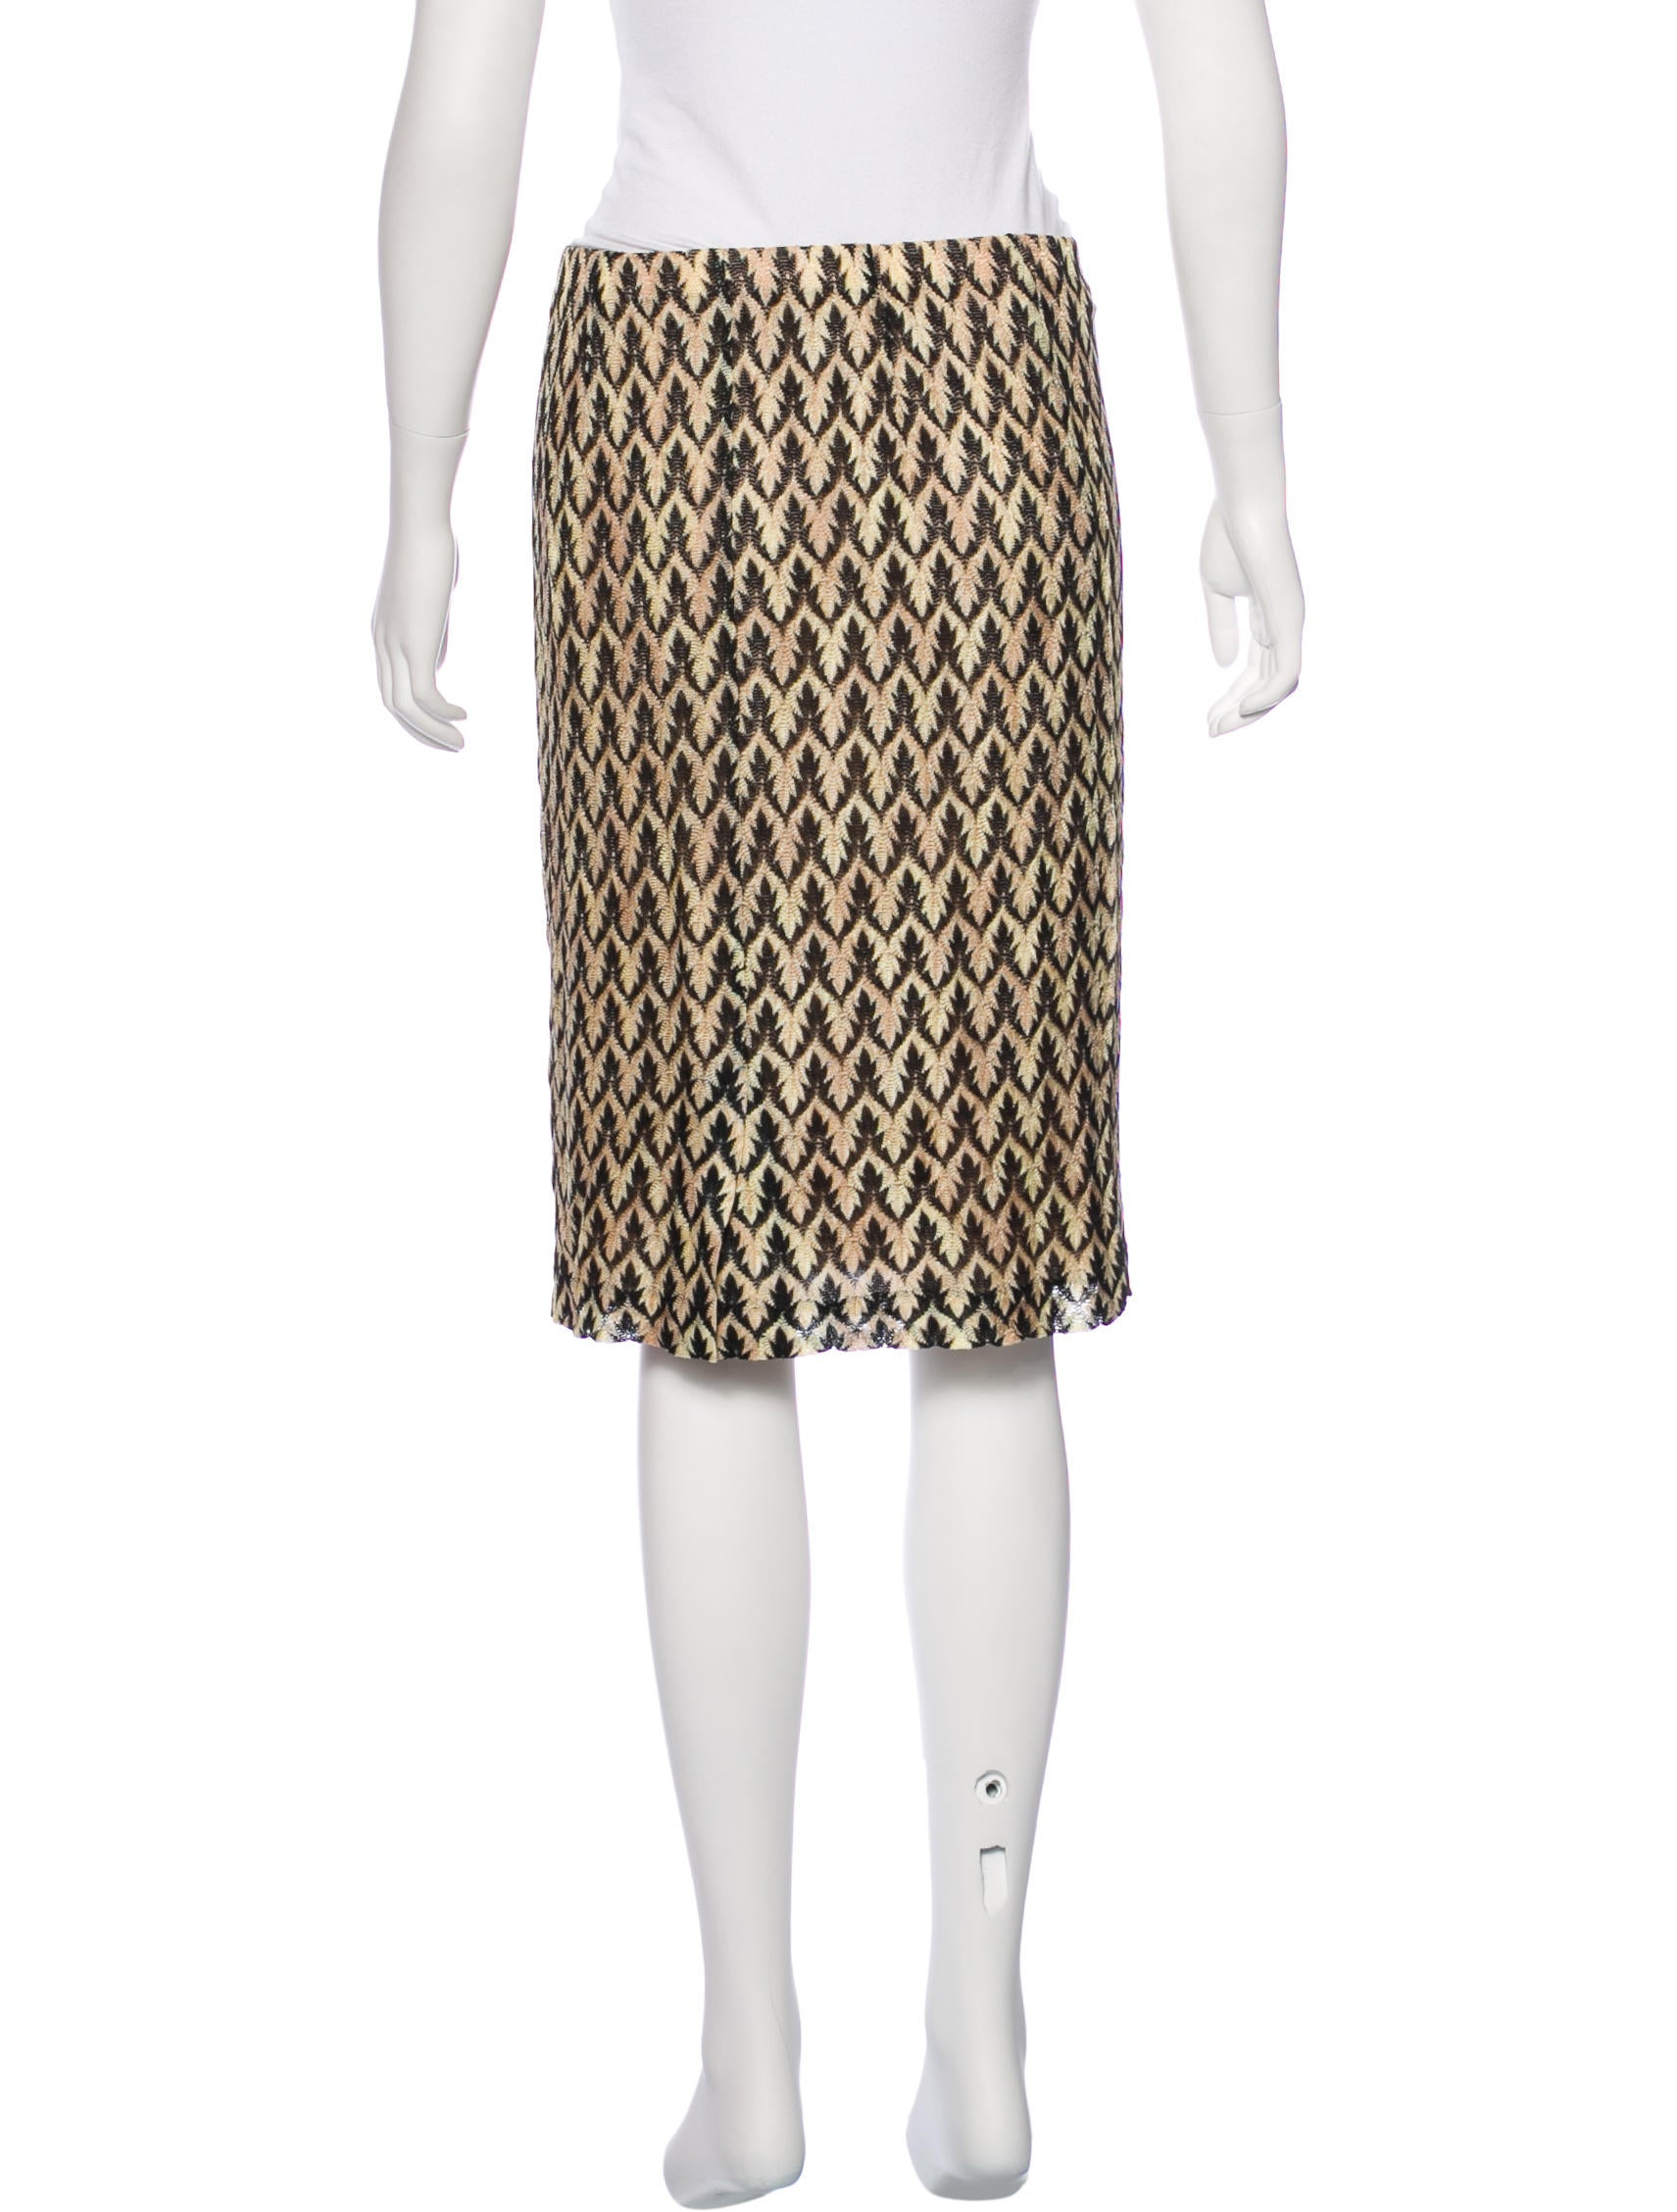 Missoni Knit Pencil Skirt - Clothing - MIS41999 The RealReal